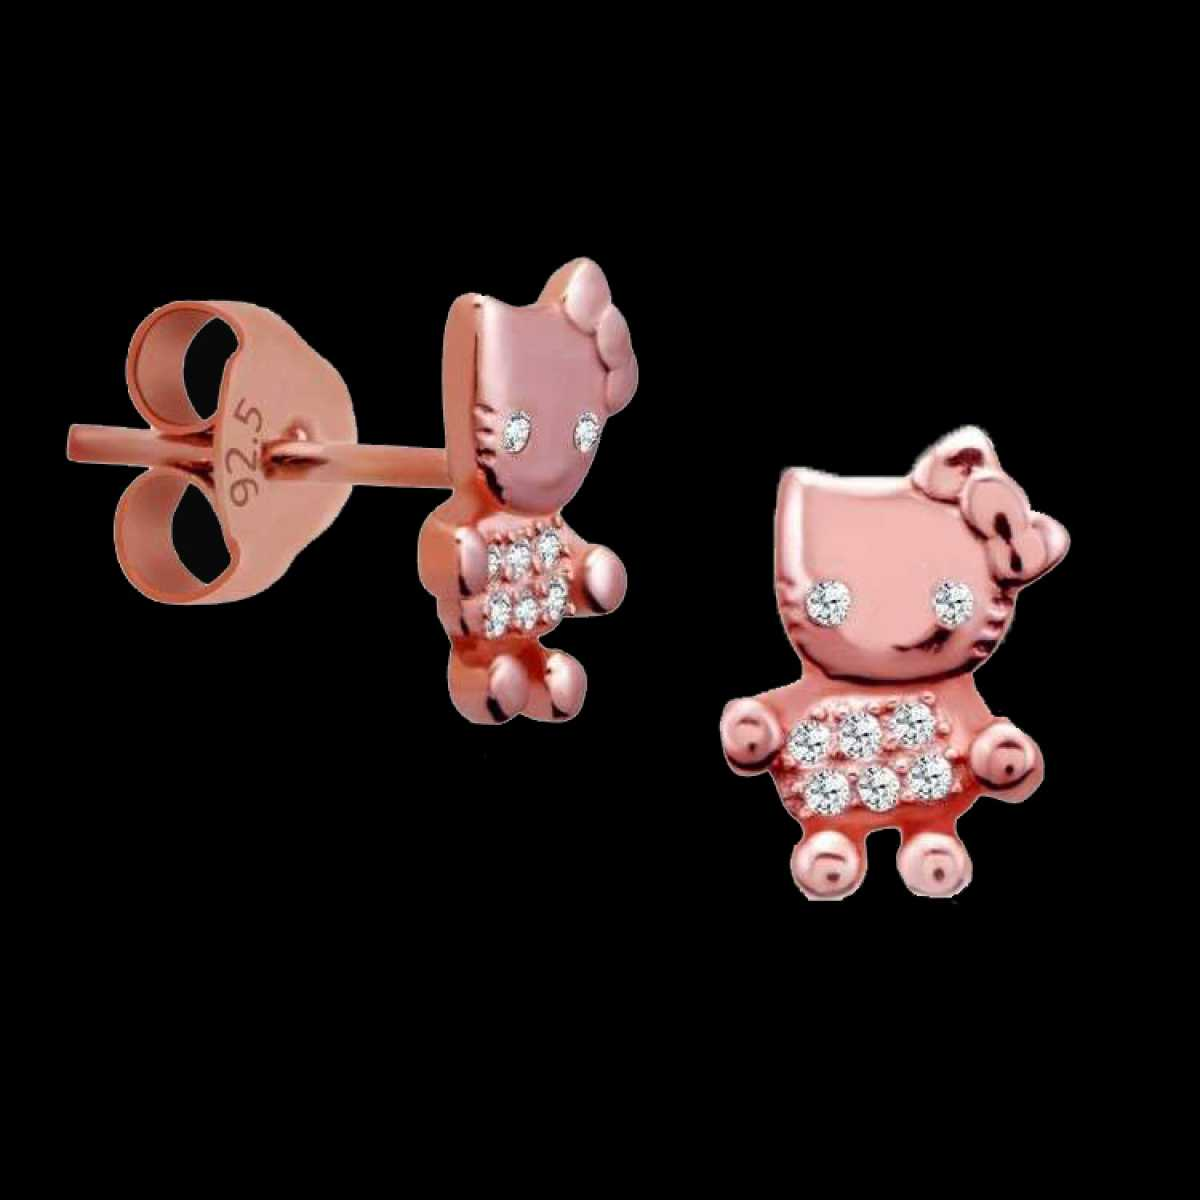 Rose Toy Earring